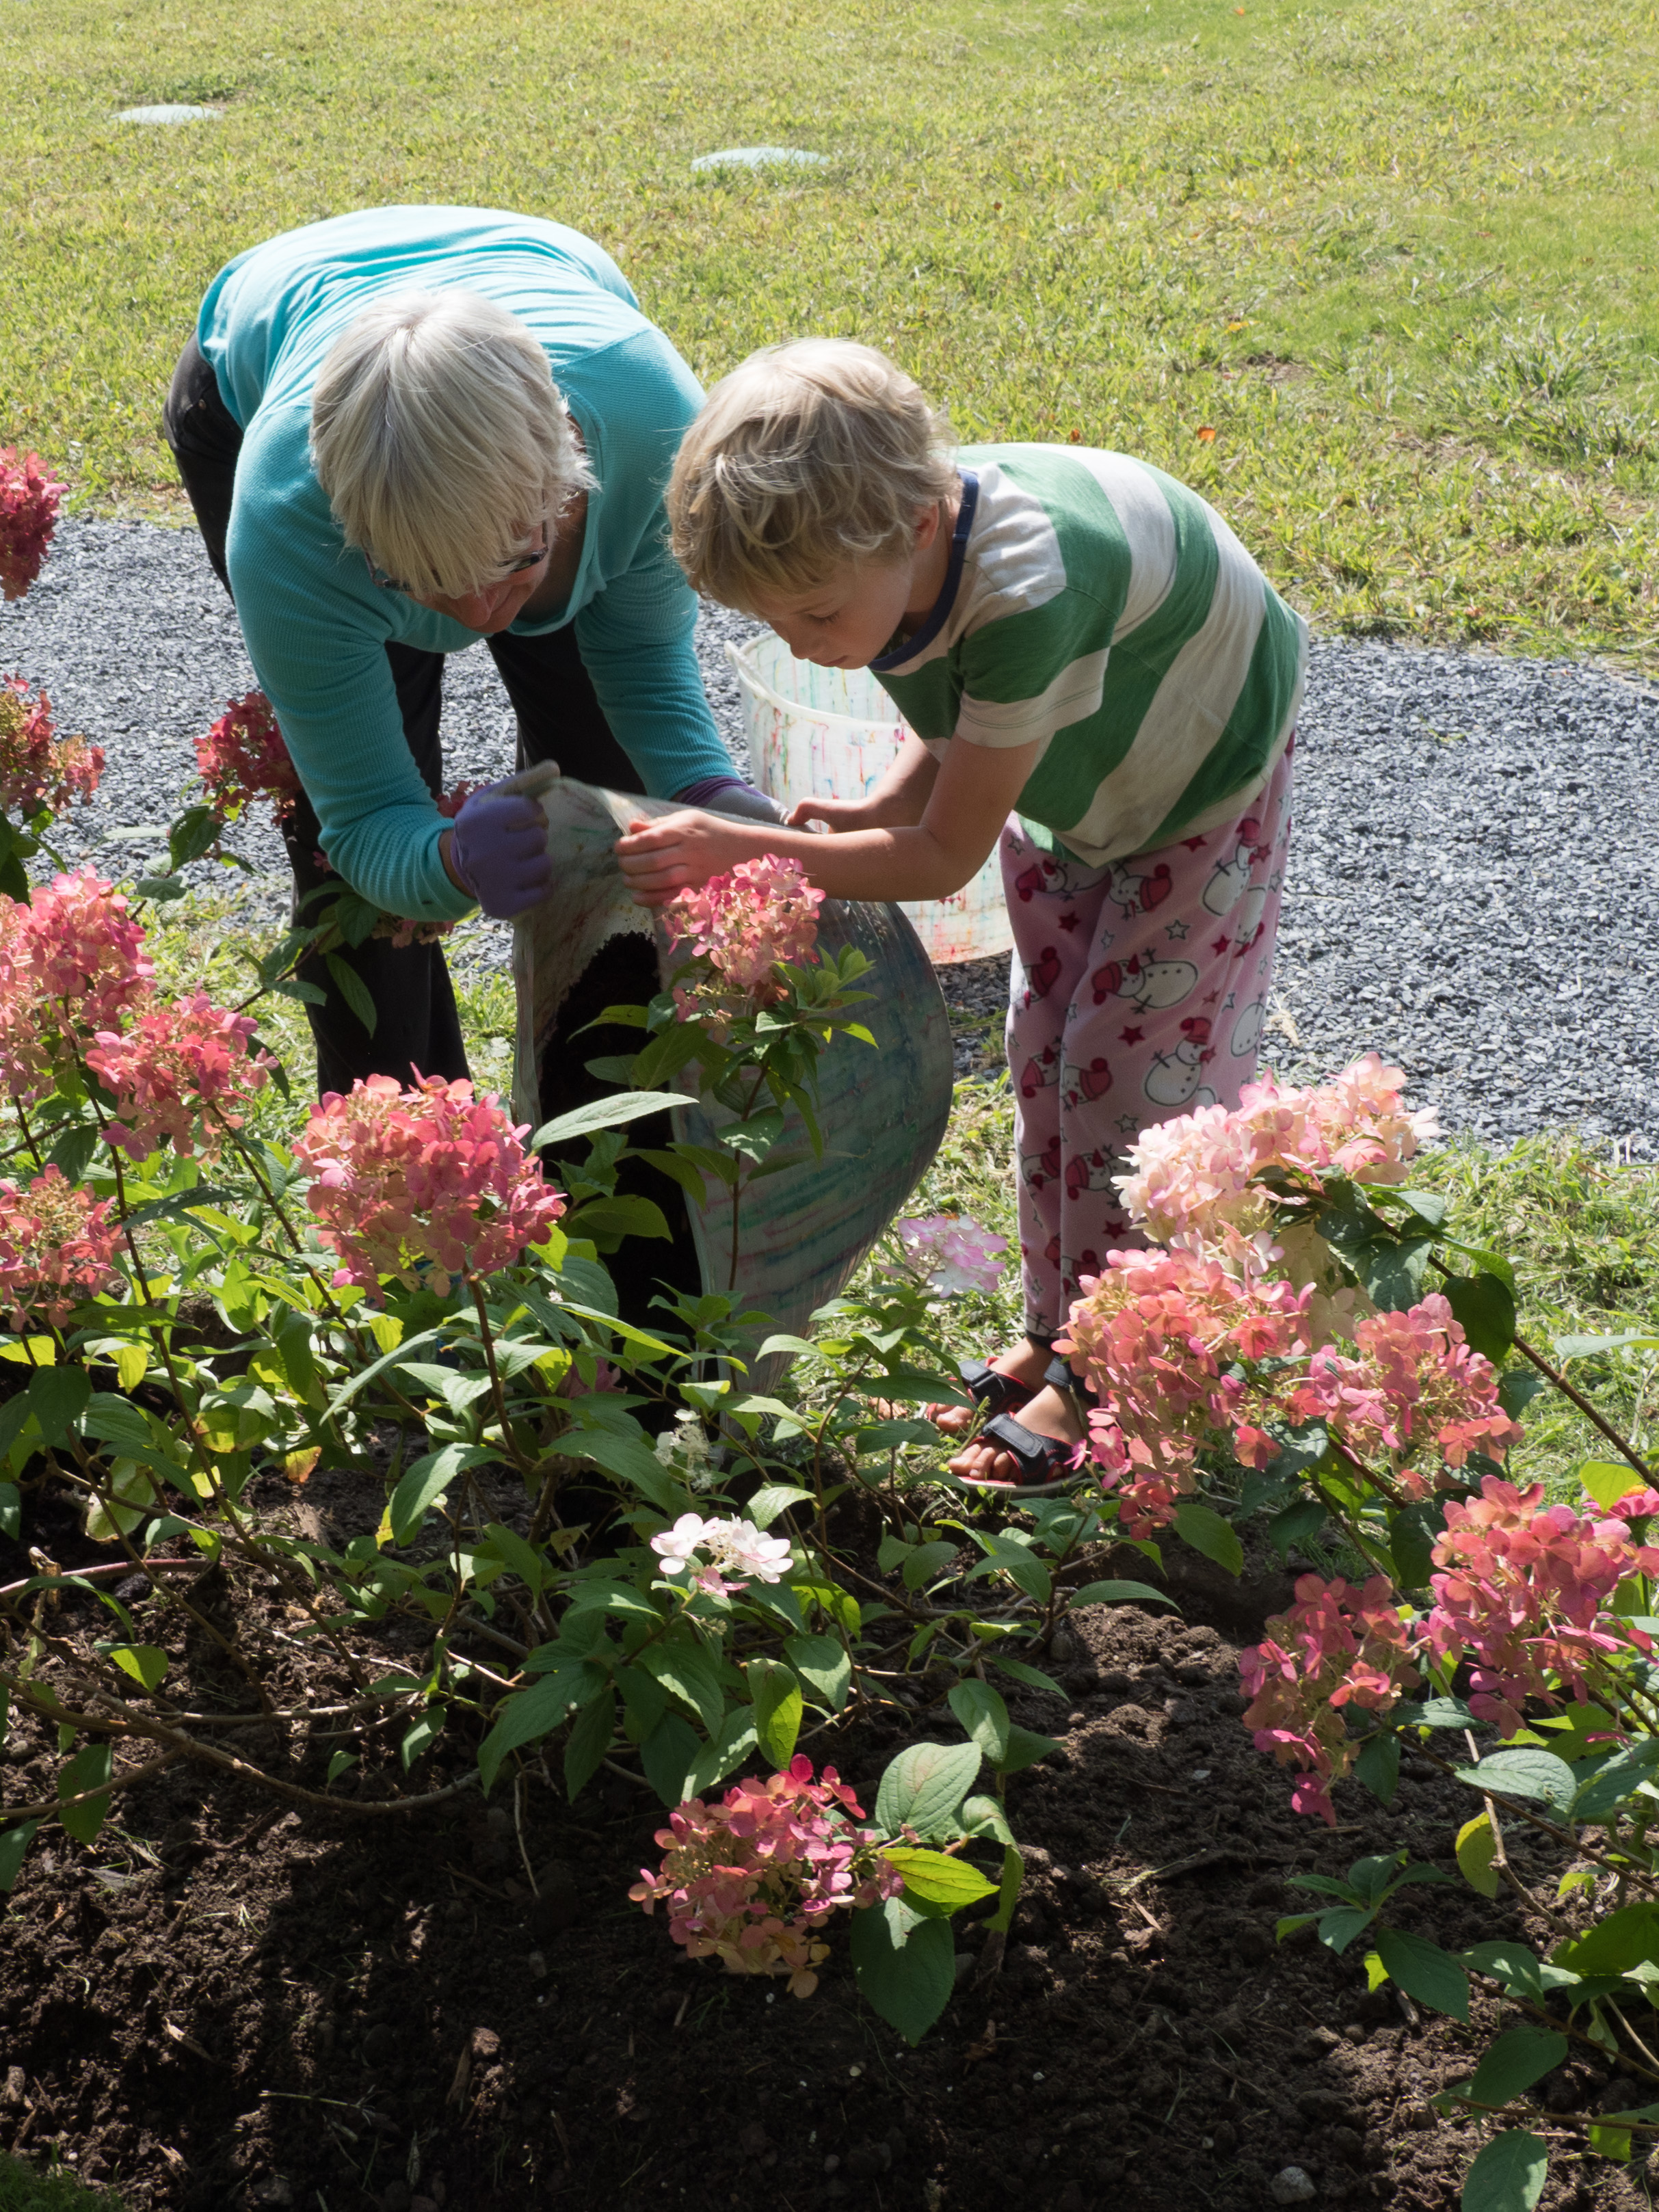 Mulching the flowering plants that line the path.